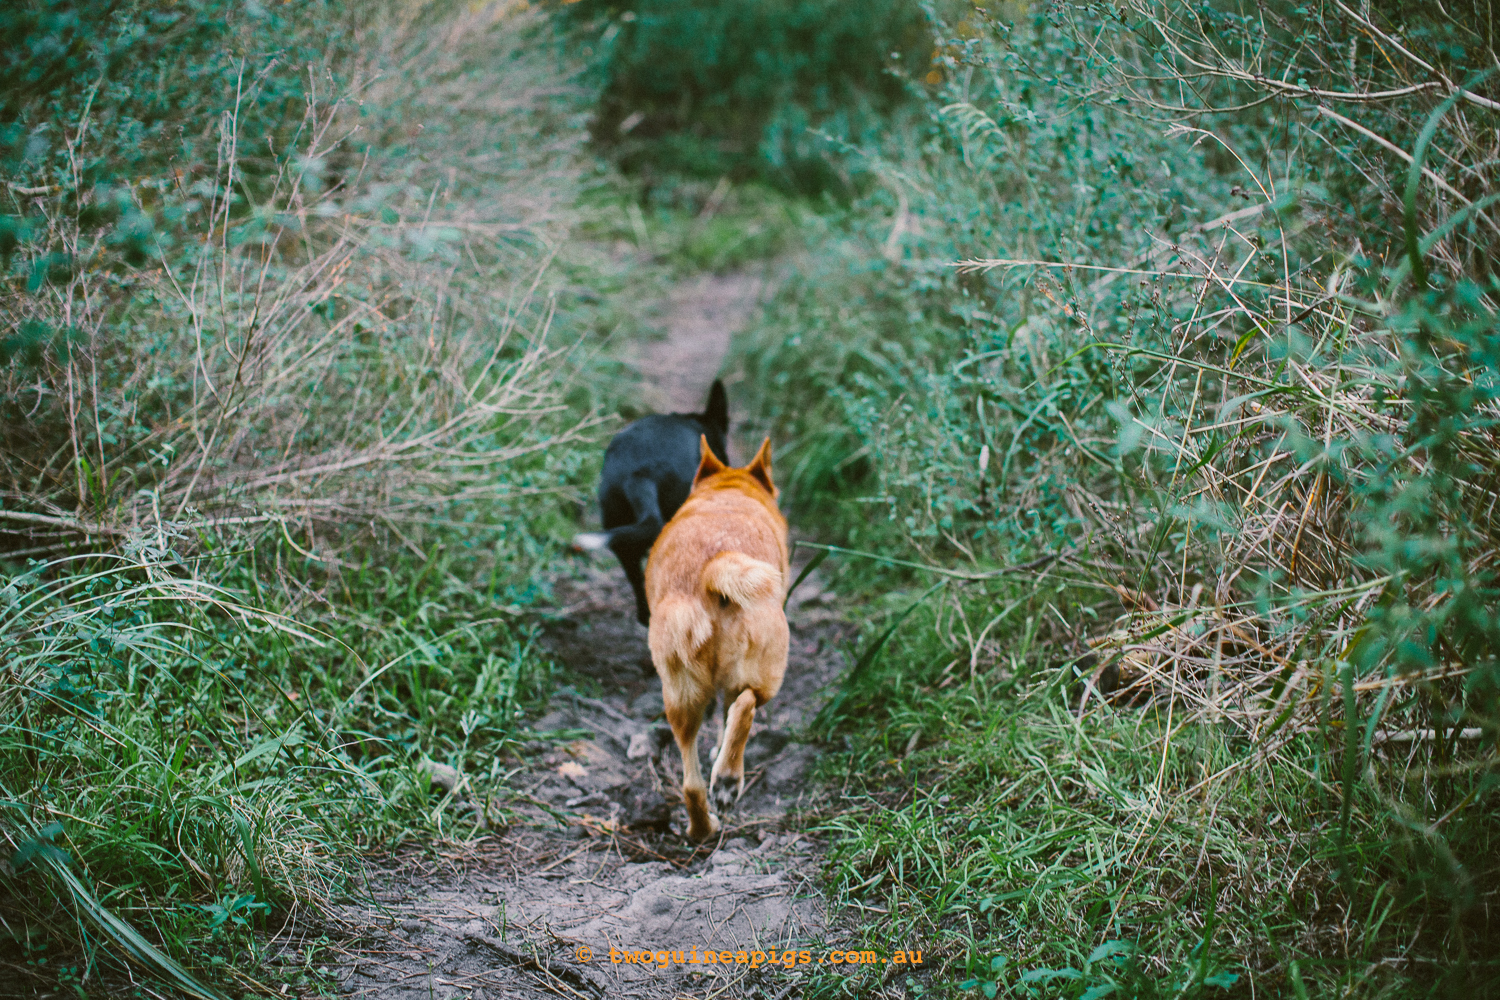 twoguineapigs_pet_photography_jkblackwell_emma_bonnie_scooby_trevor_anthony_acd_kelpie_stumpy_dingo_1500-126.jpg